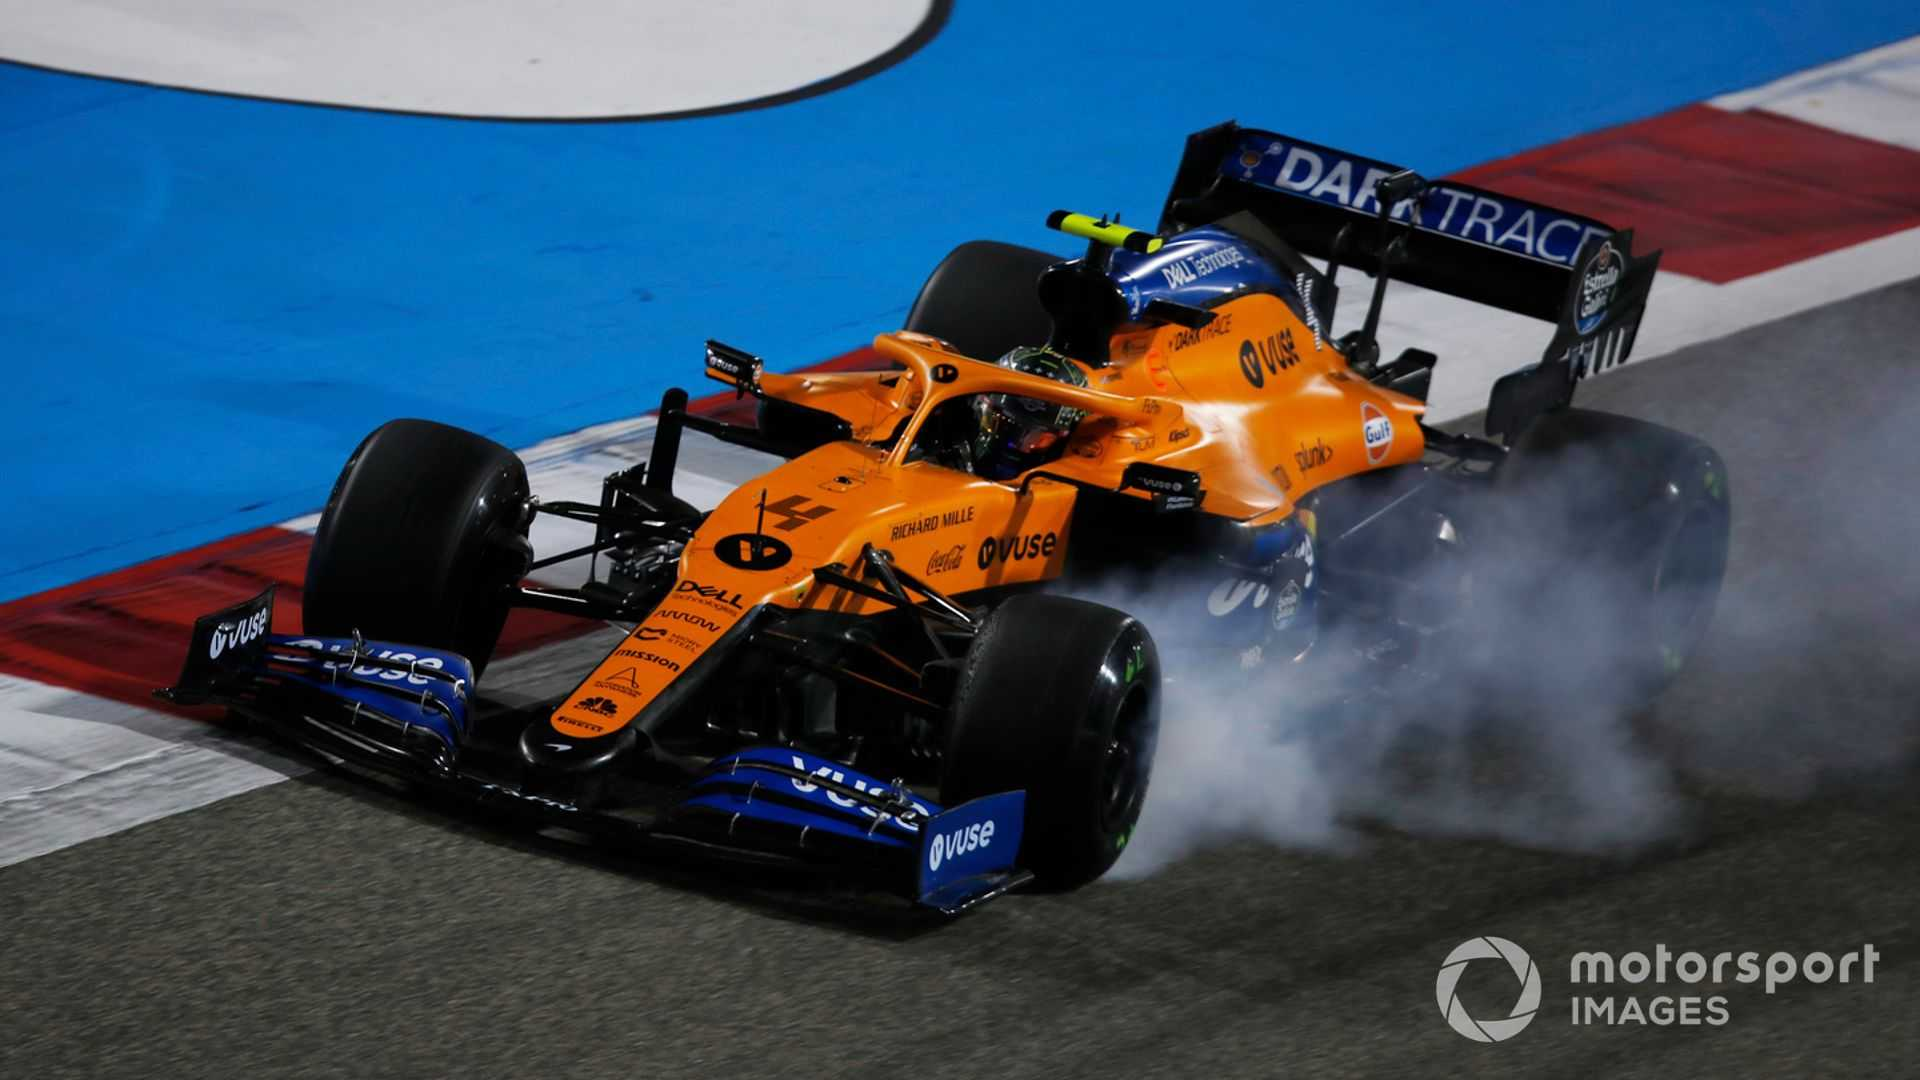 McLaren targeting improvement in two key areas in F1 2021